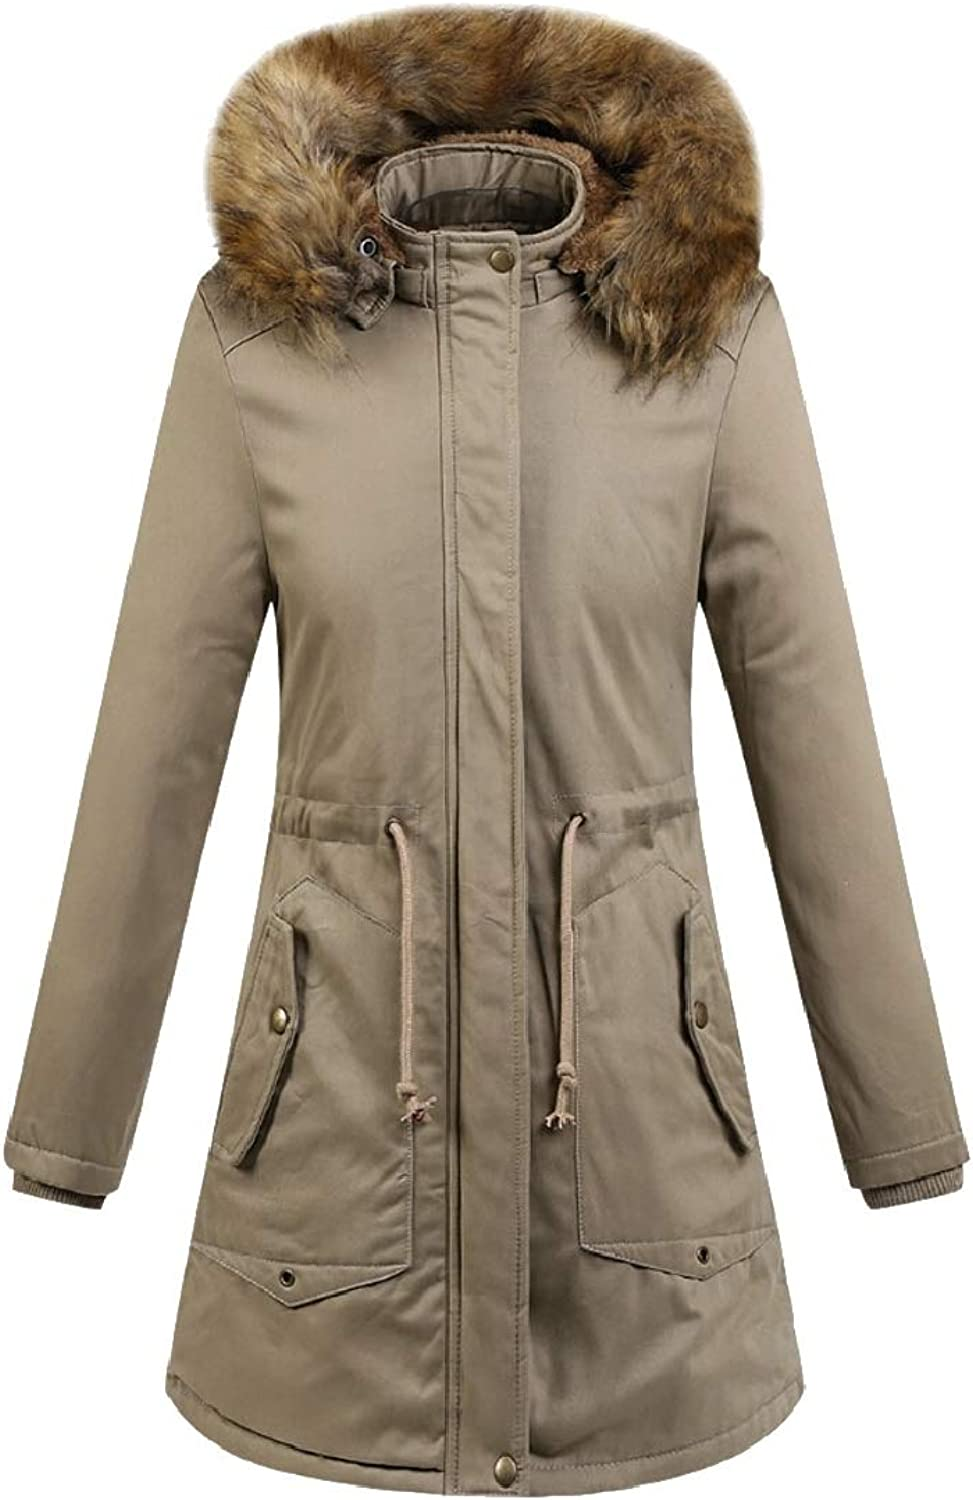 Maweisong Womens Parka Jacket Hooded Winter Coats Faux Fur Outdoor Coat